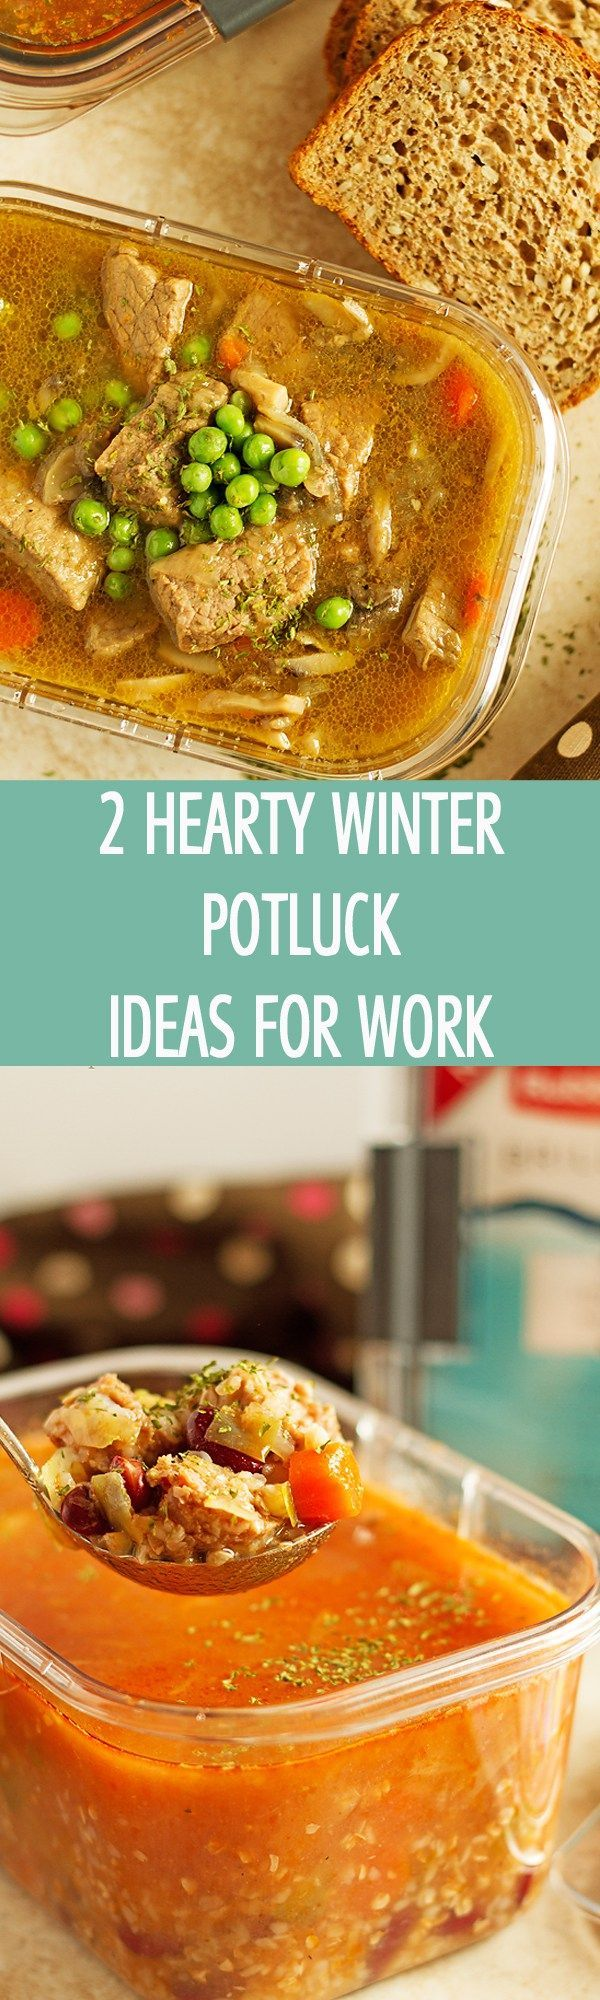 2 hearty winter potluck ideas for work to please the crowd! 2 recipes included: beef stew with onions and soup packed with sausage, buckwheat and beans by ilonaspassion.com I @ilonaspassion #ad #ShareYourBrilliance #CollectiveBias